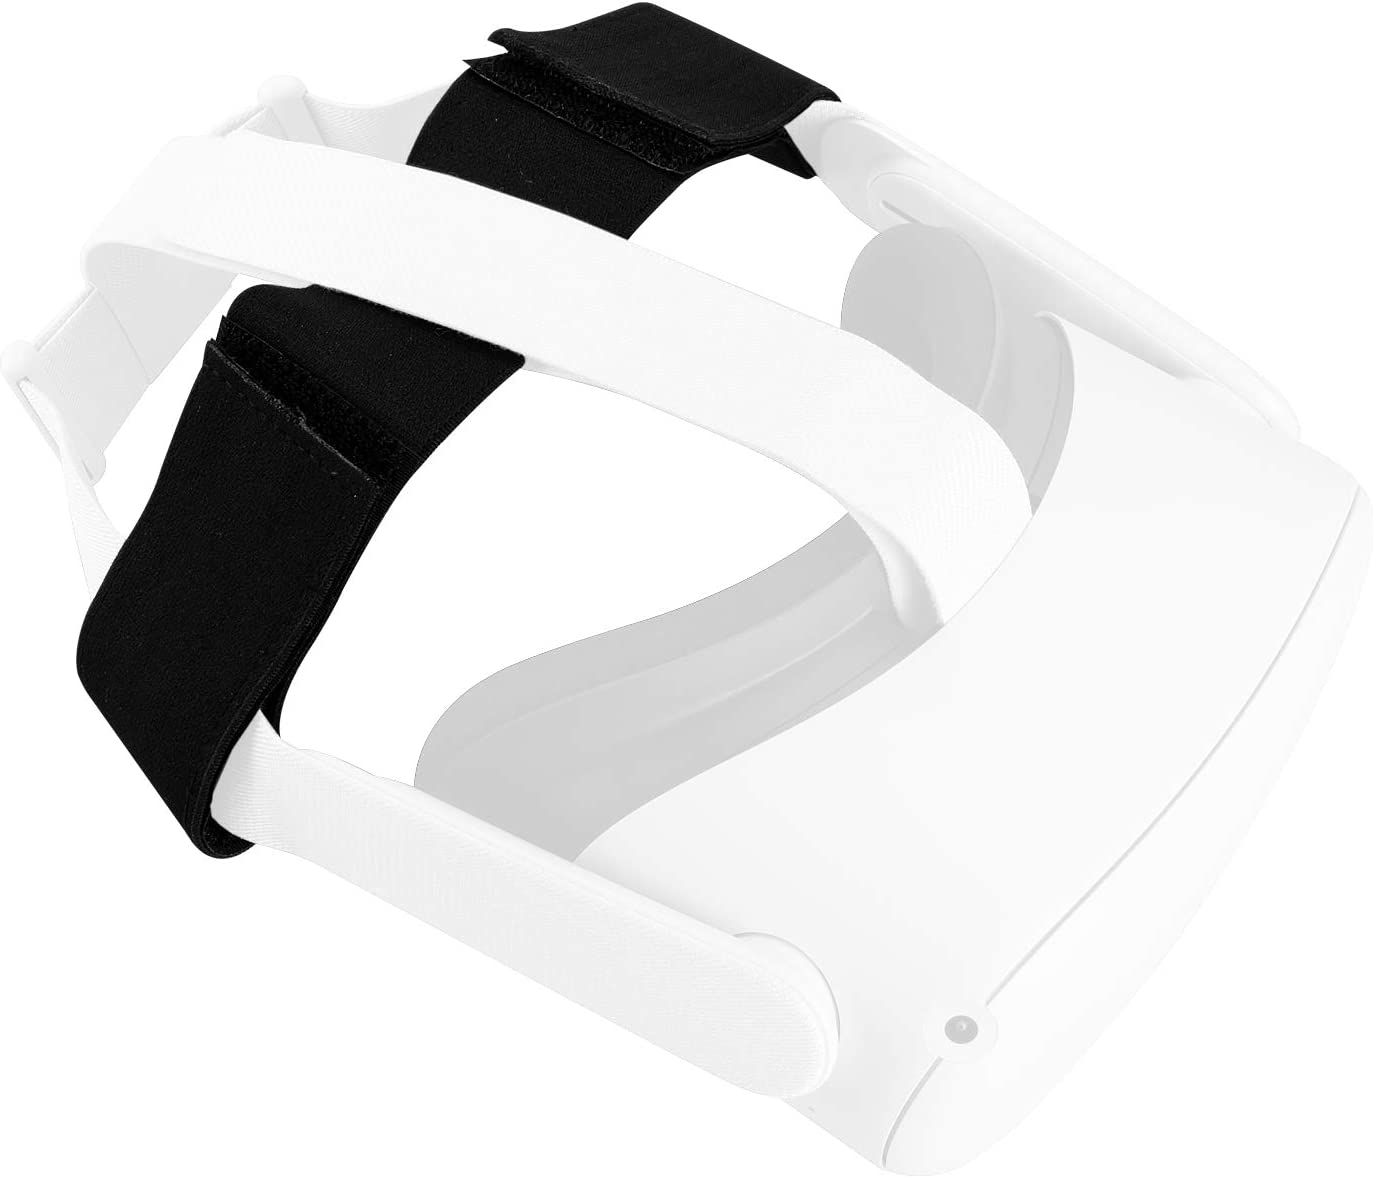 (1 Pack) Orzero Stretch Belt Compatible for Oculus Quest 2, Oculus Quest, Headband Head Strap for VR Headset - Black